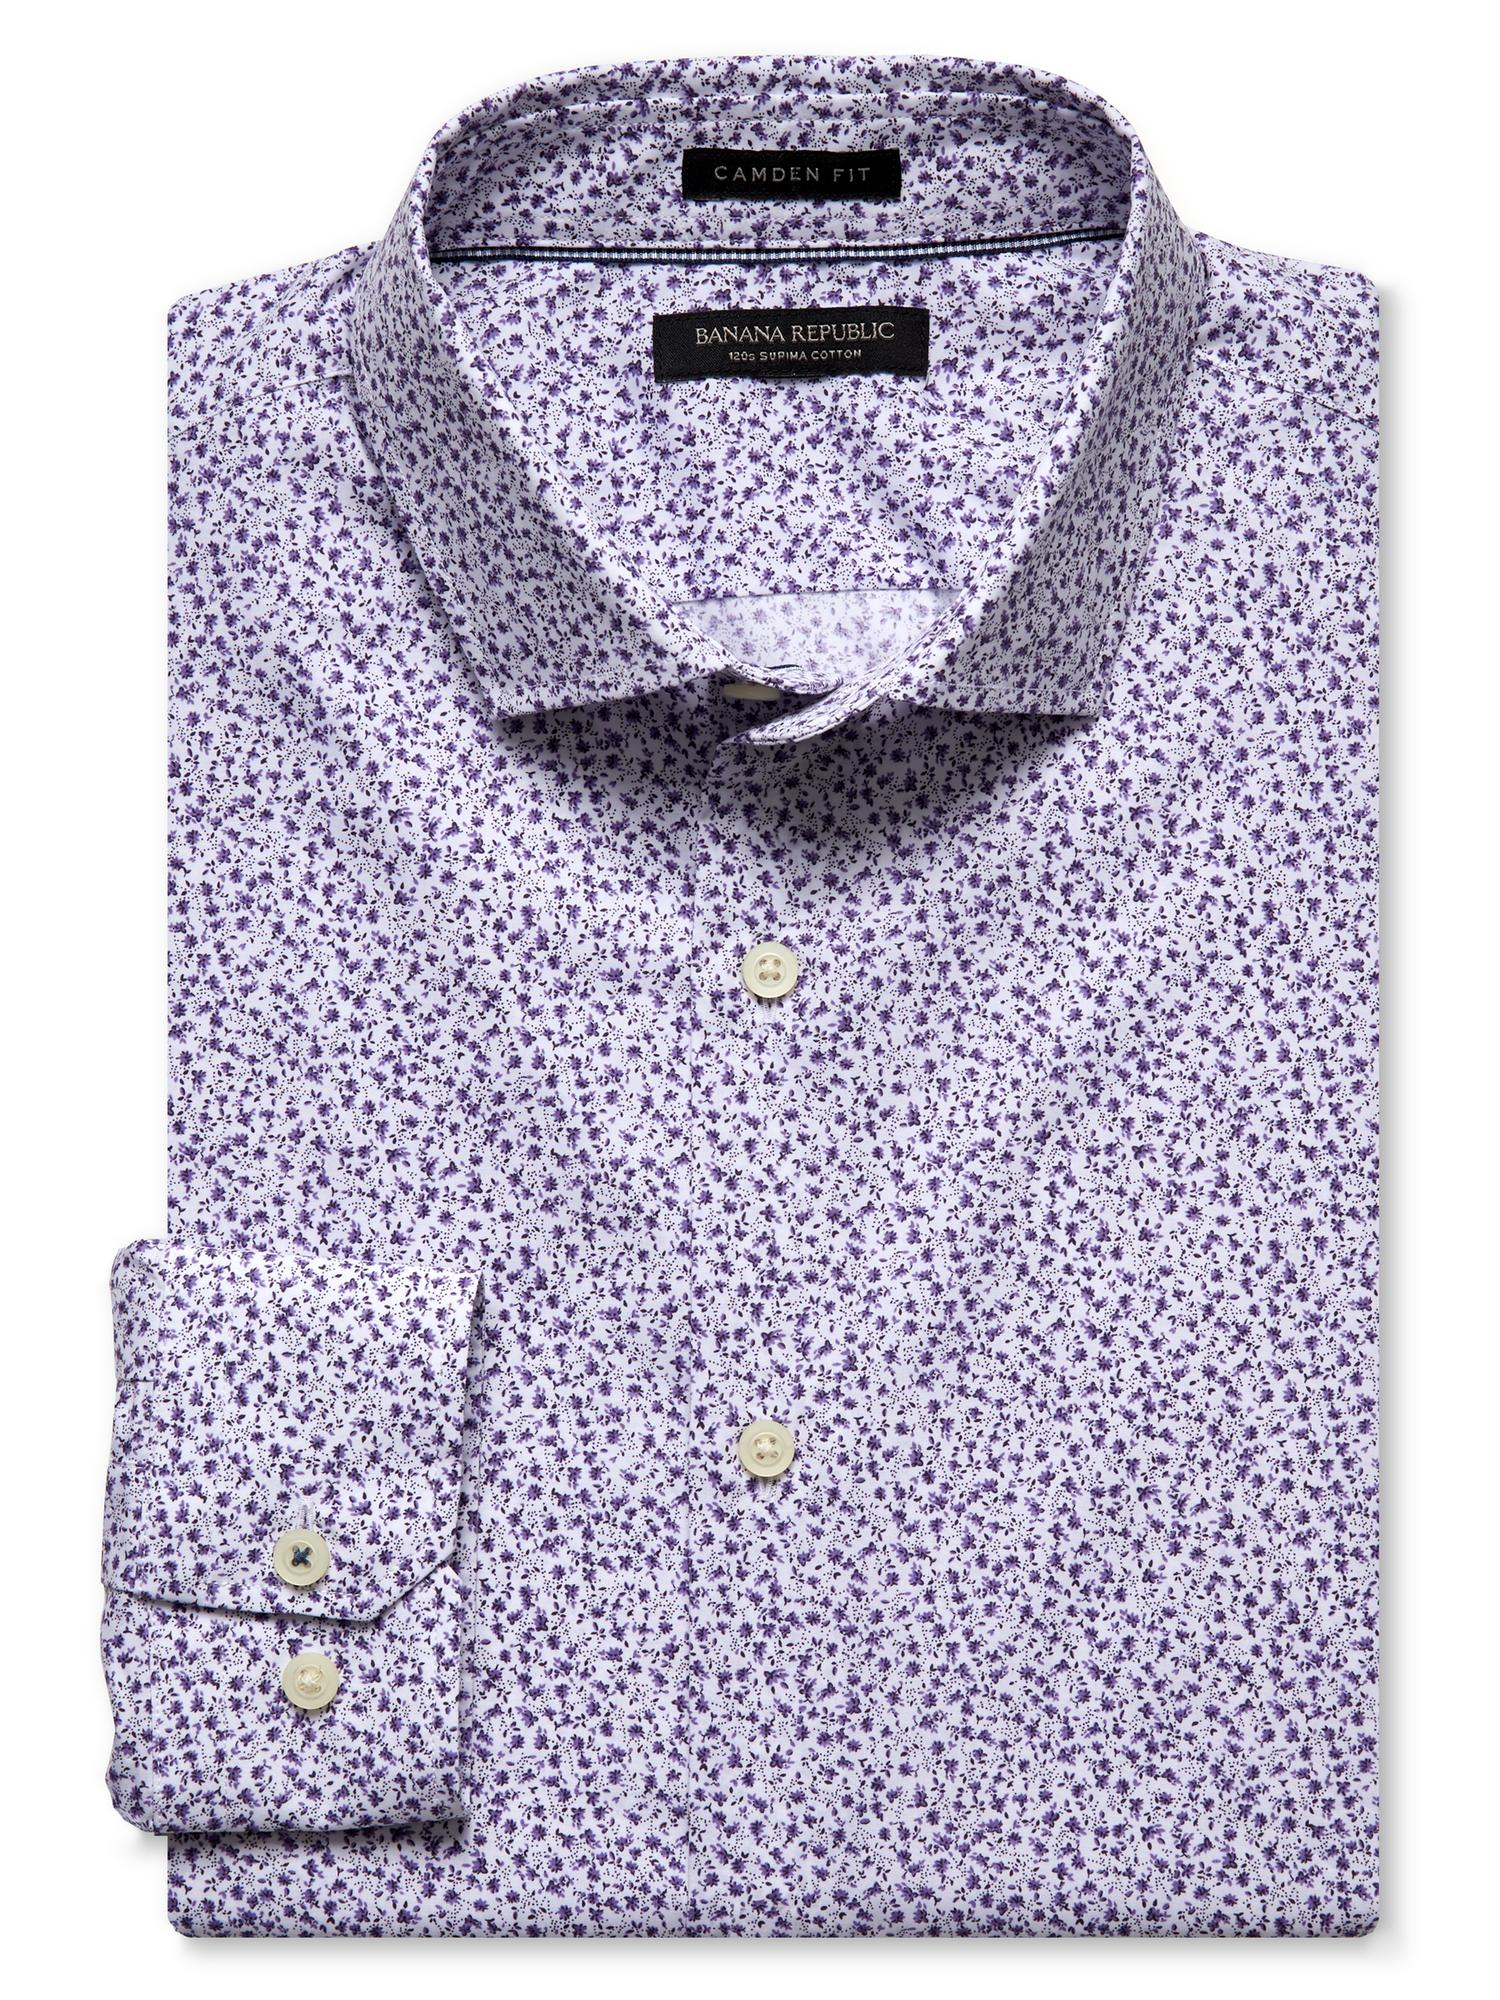 Floral Prints for Guys - Banana Republic Camden-Fit Purple Floral 120s Supima Cotton Shirt